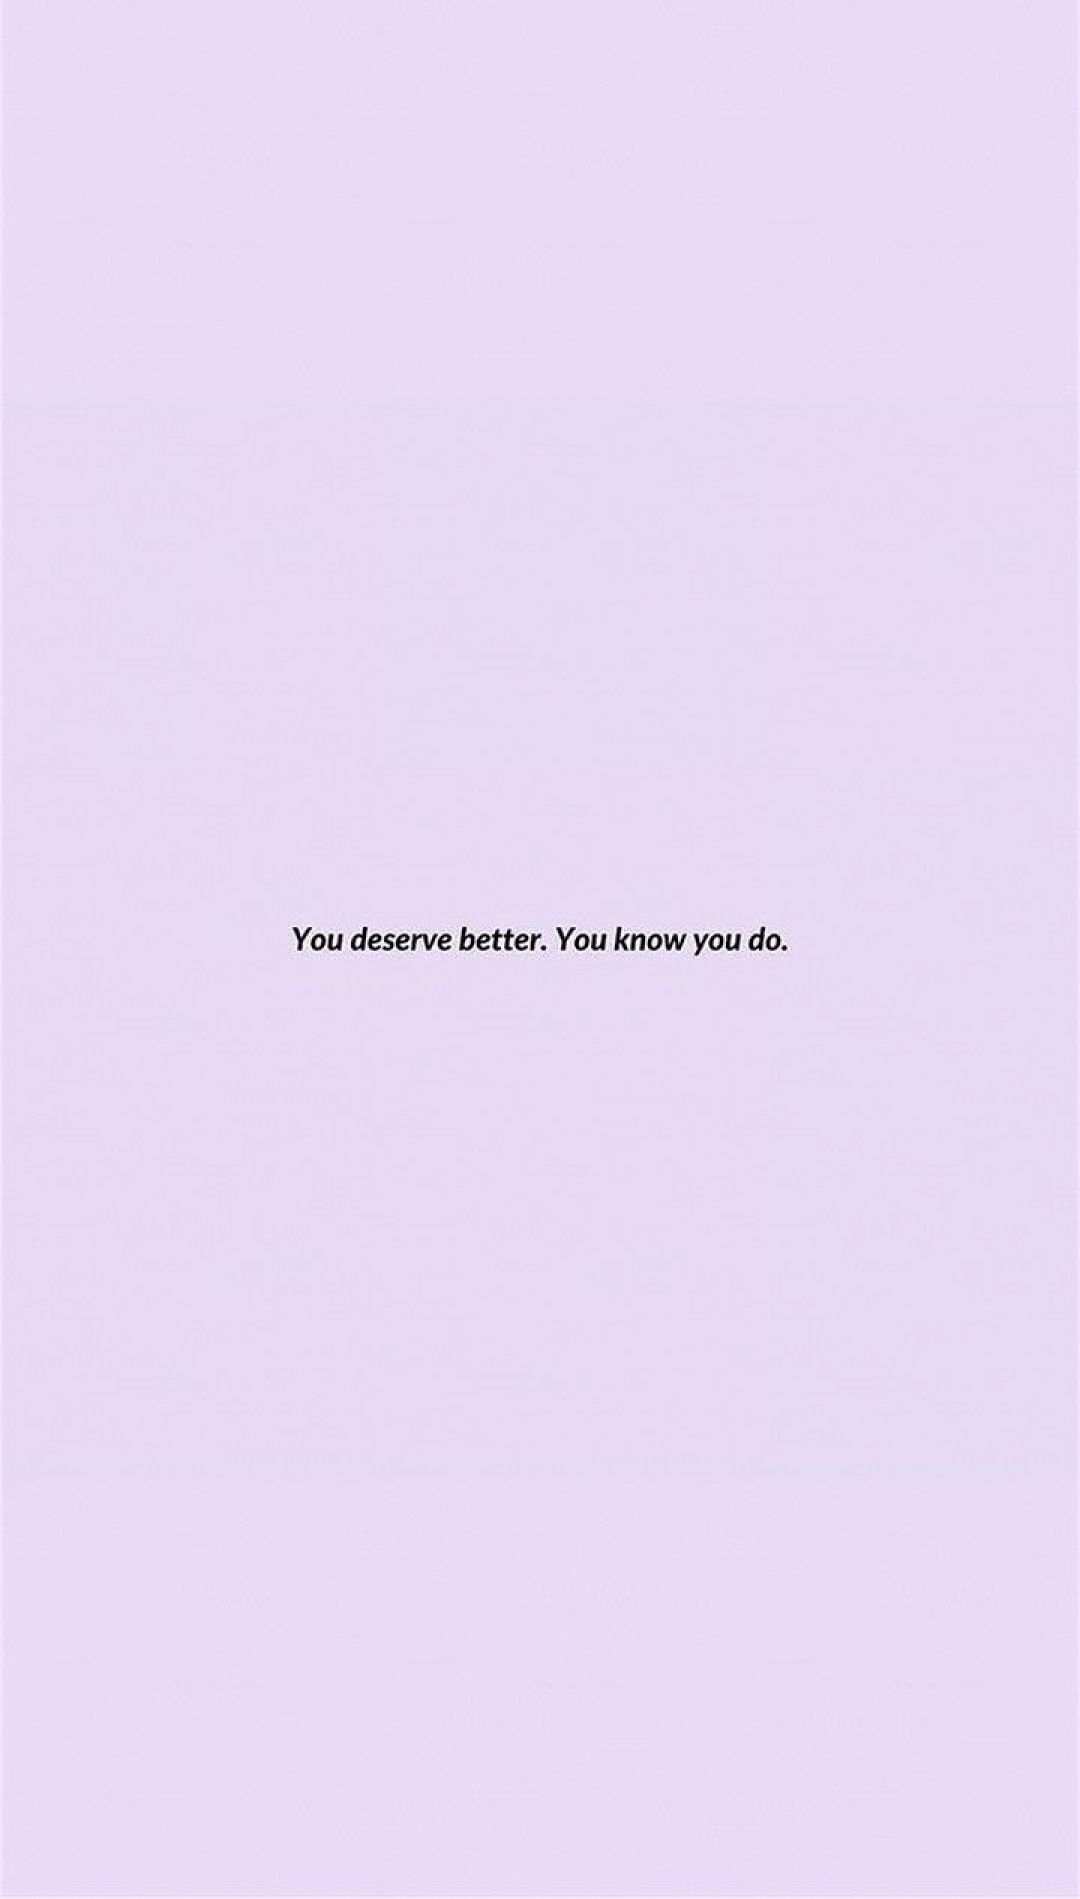 ✅ sad aesthetic quote android iphone desktop hd